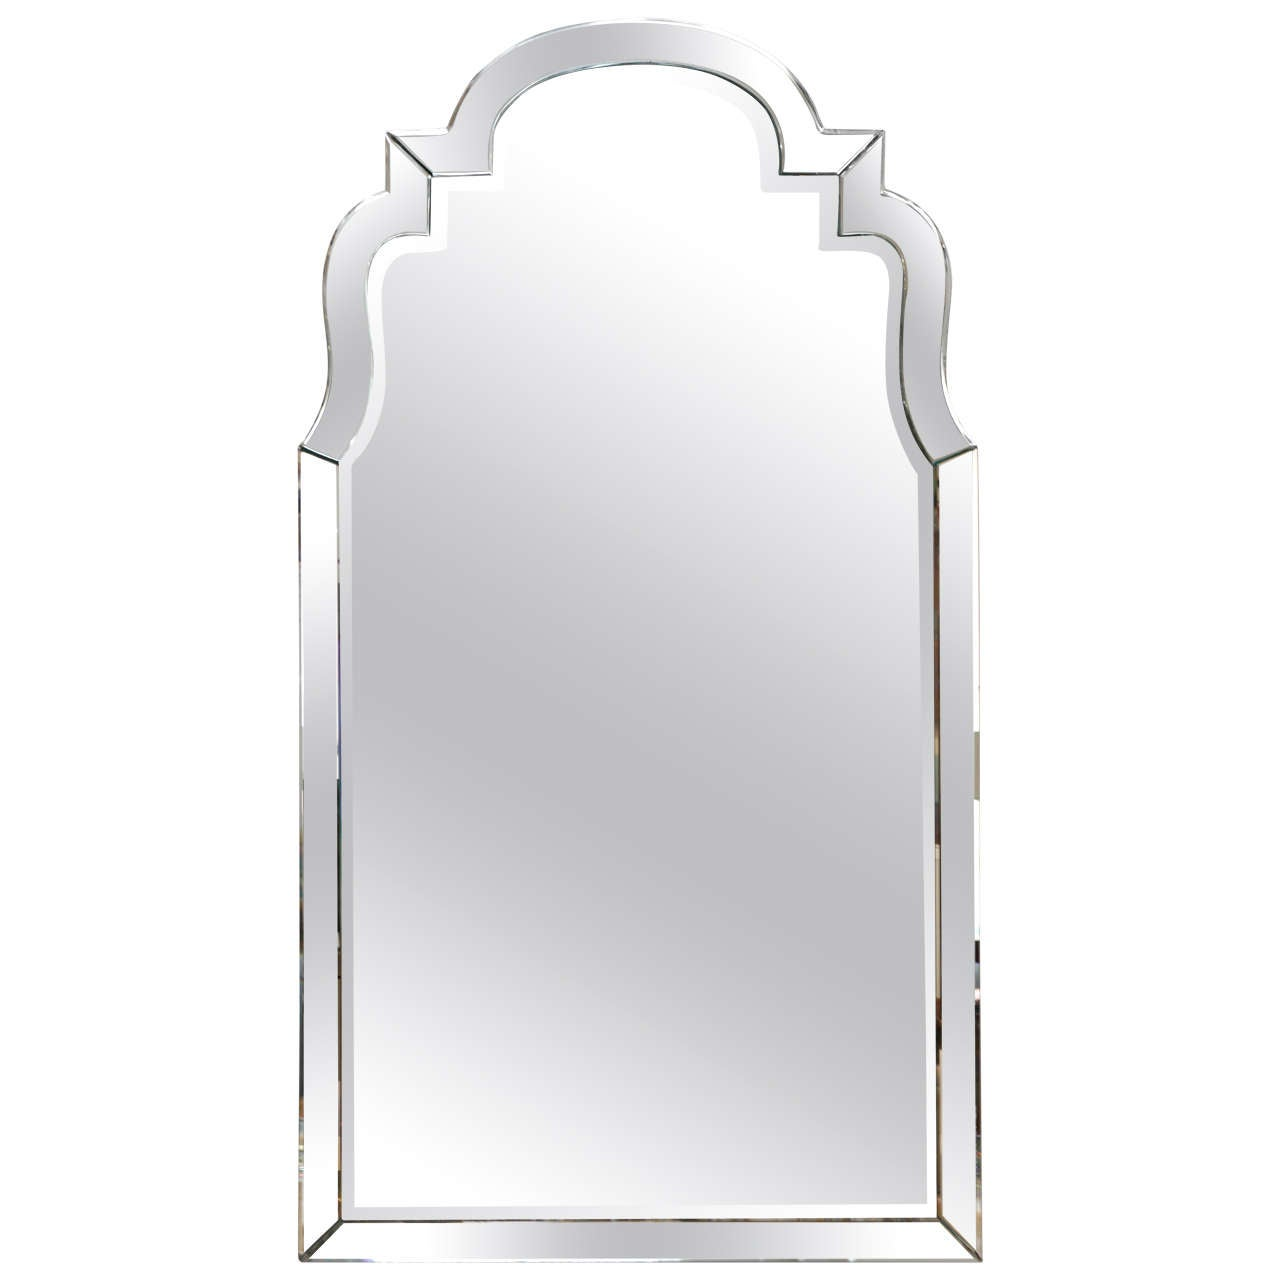 Arched gilt mirror at 1stdibs - Venetian Mirror Framed Mirror In The Queen Anne Style 1